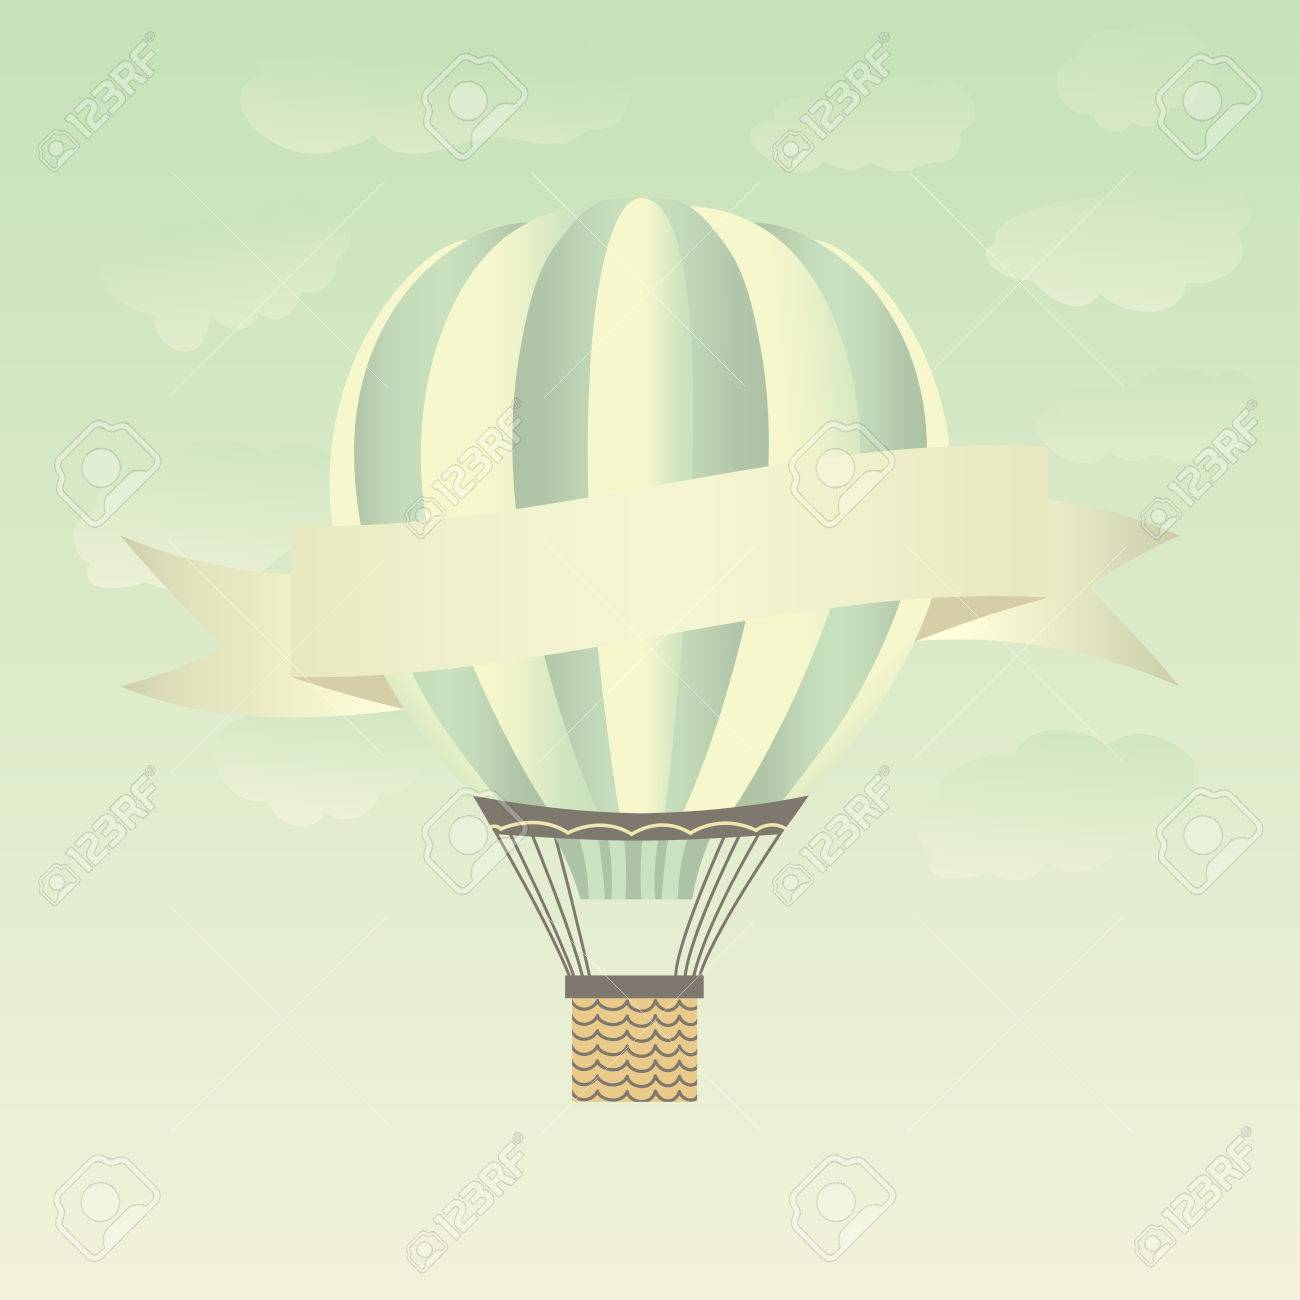 Hot air balloons in the sky. - 35171926